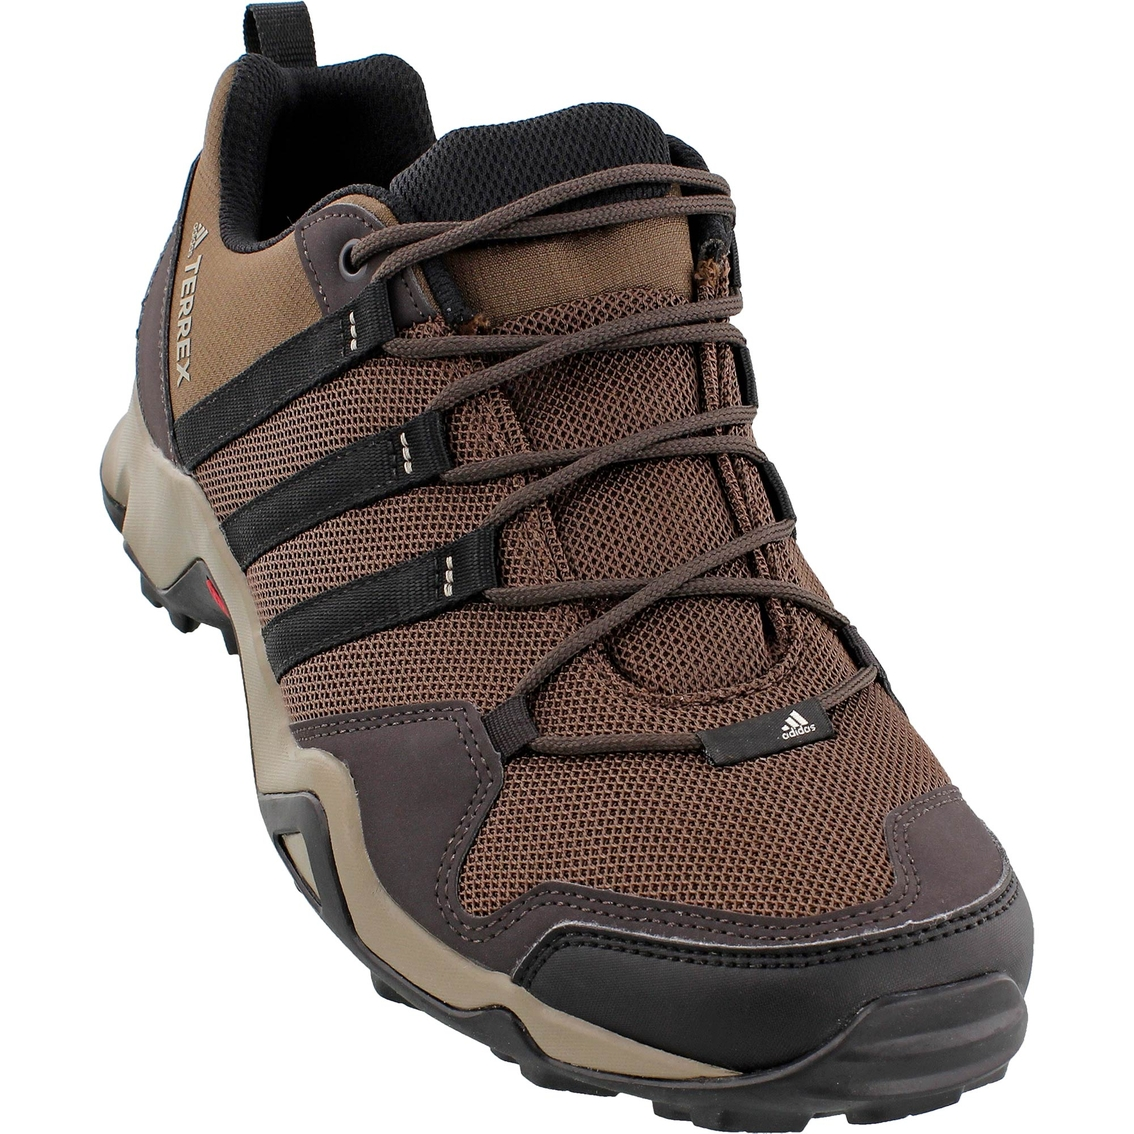 4c0c762cef465 Adidas Outdoor Men's Terrex Ax2r Hiking Shoes | Hiking | Shoes ...